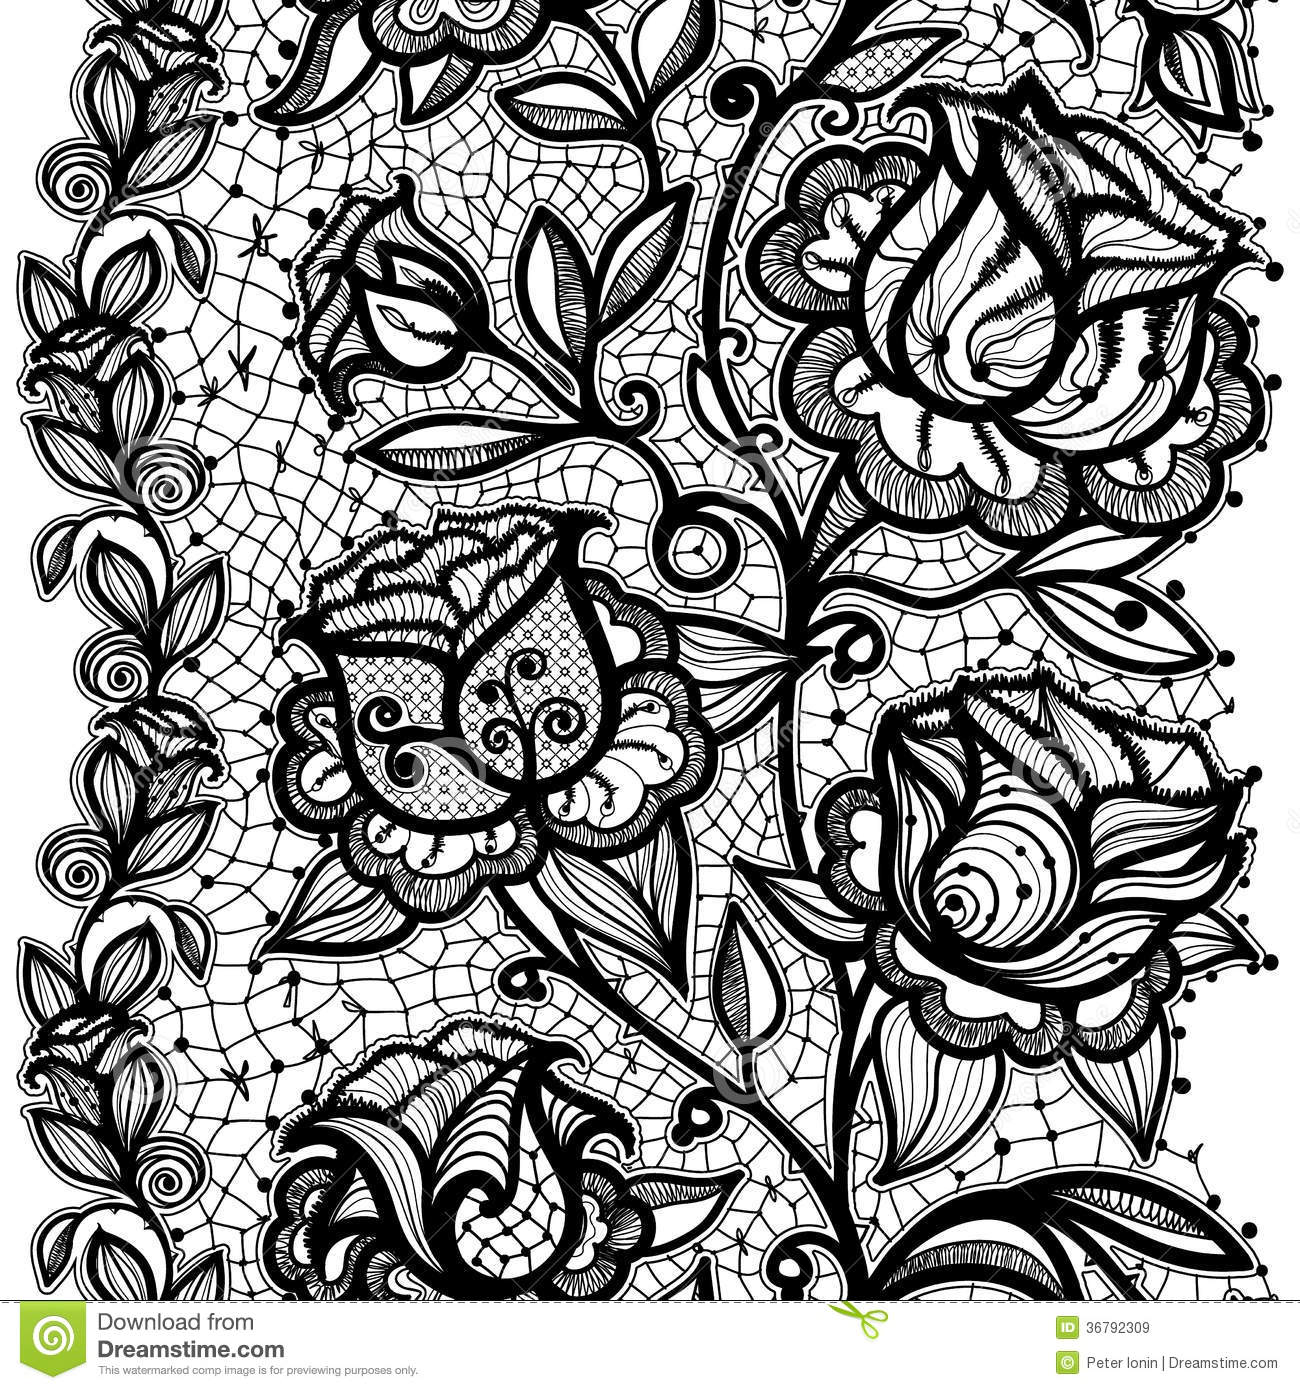 image free Portal . Simple lace patterns clipart.